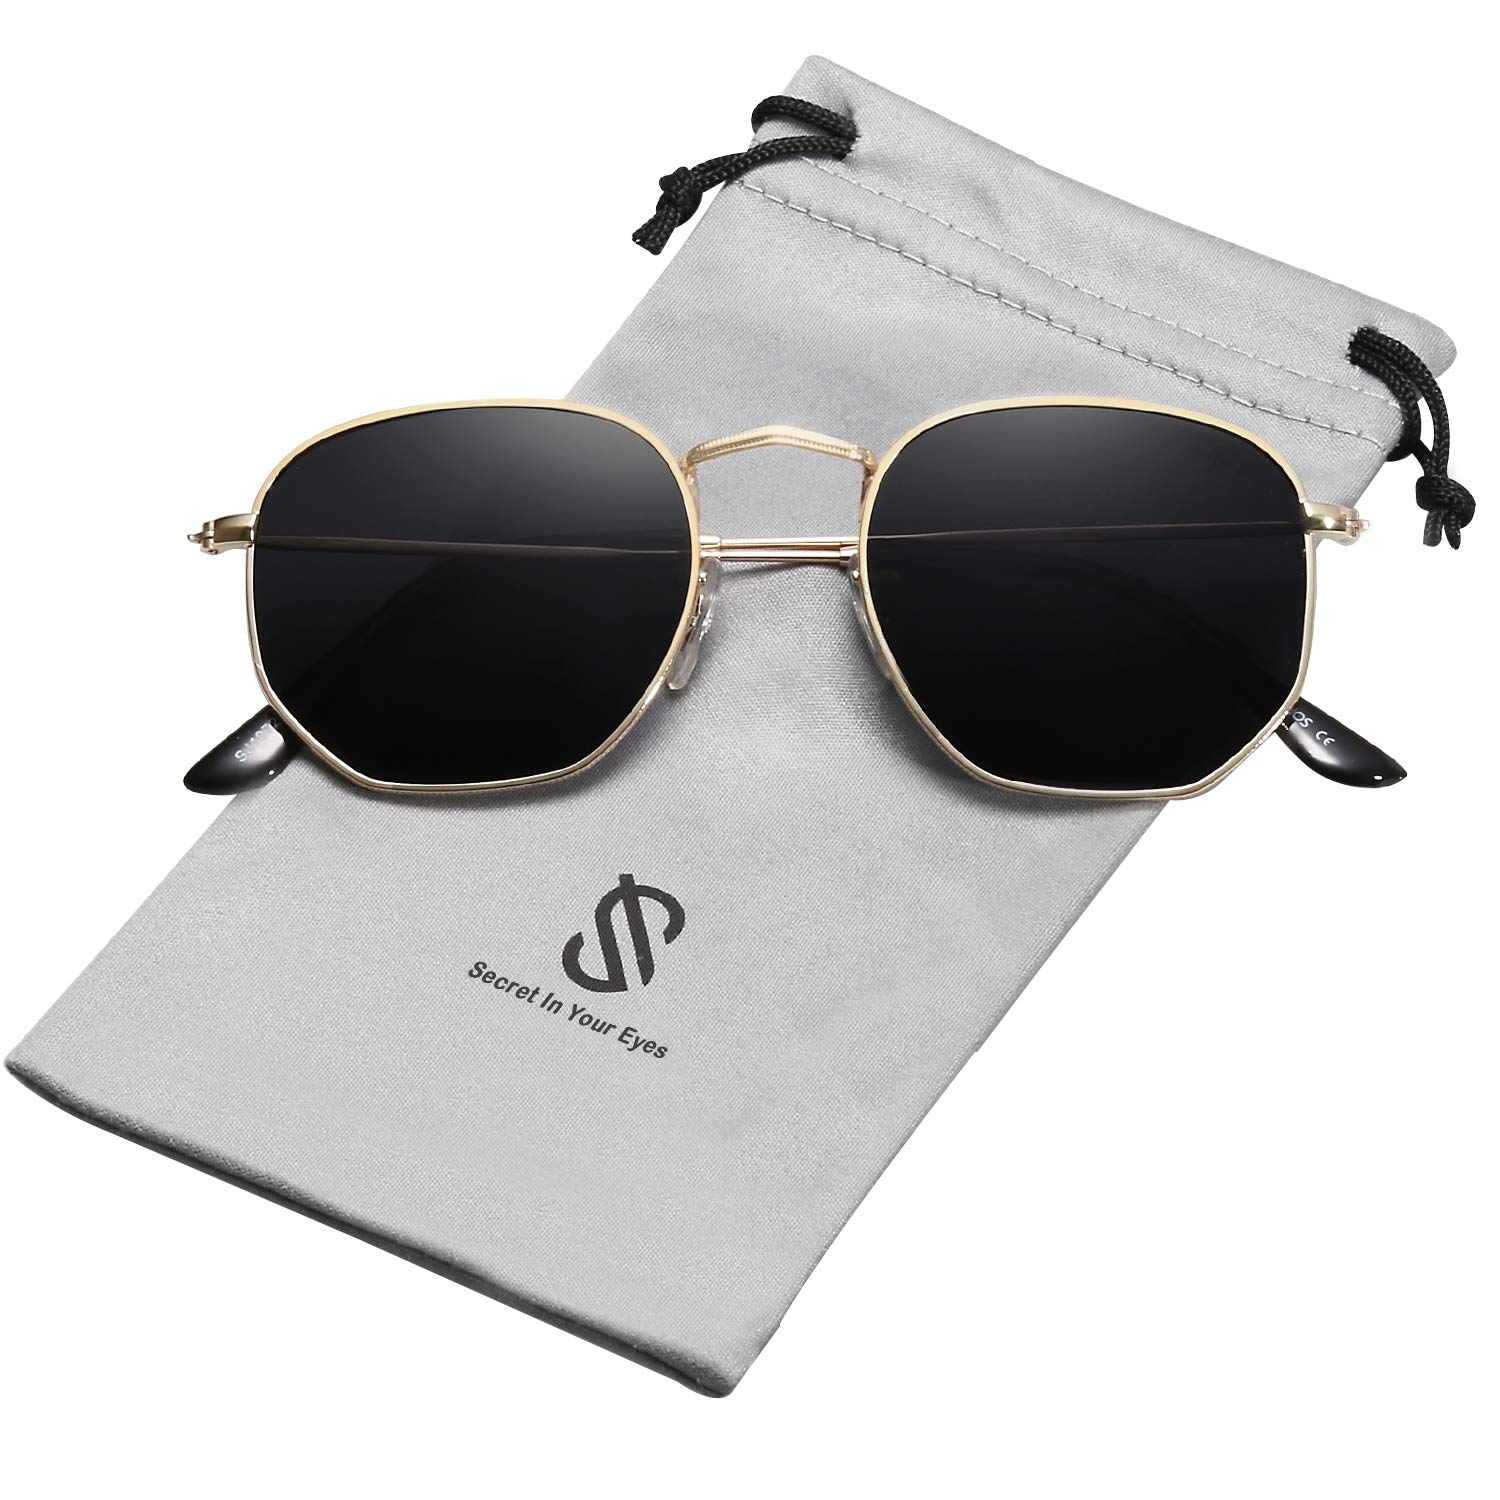 SOJOS Small Square Polarized Sunglasses for Men and Women Polygon Mirrored Lens SJ1072 with Gold Frame/Grey Polarized Lens by SOJOS